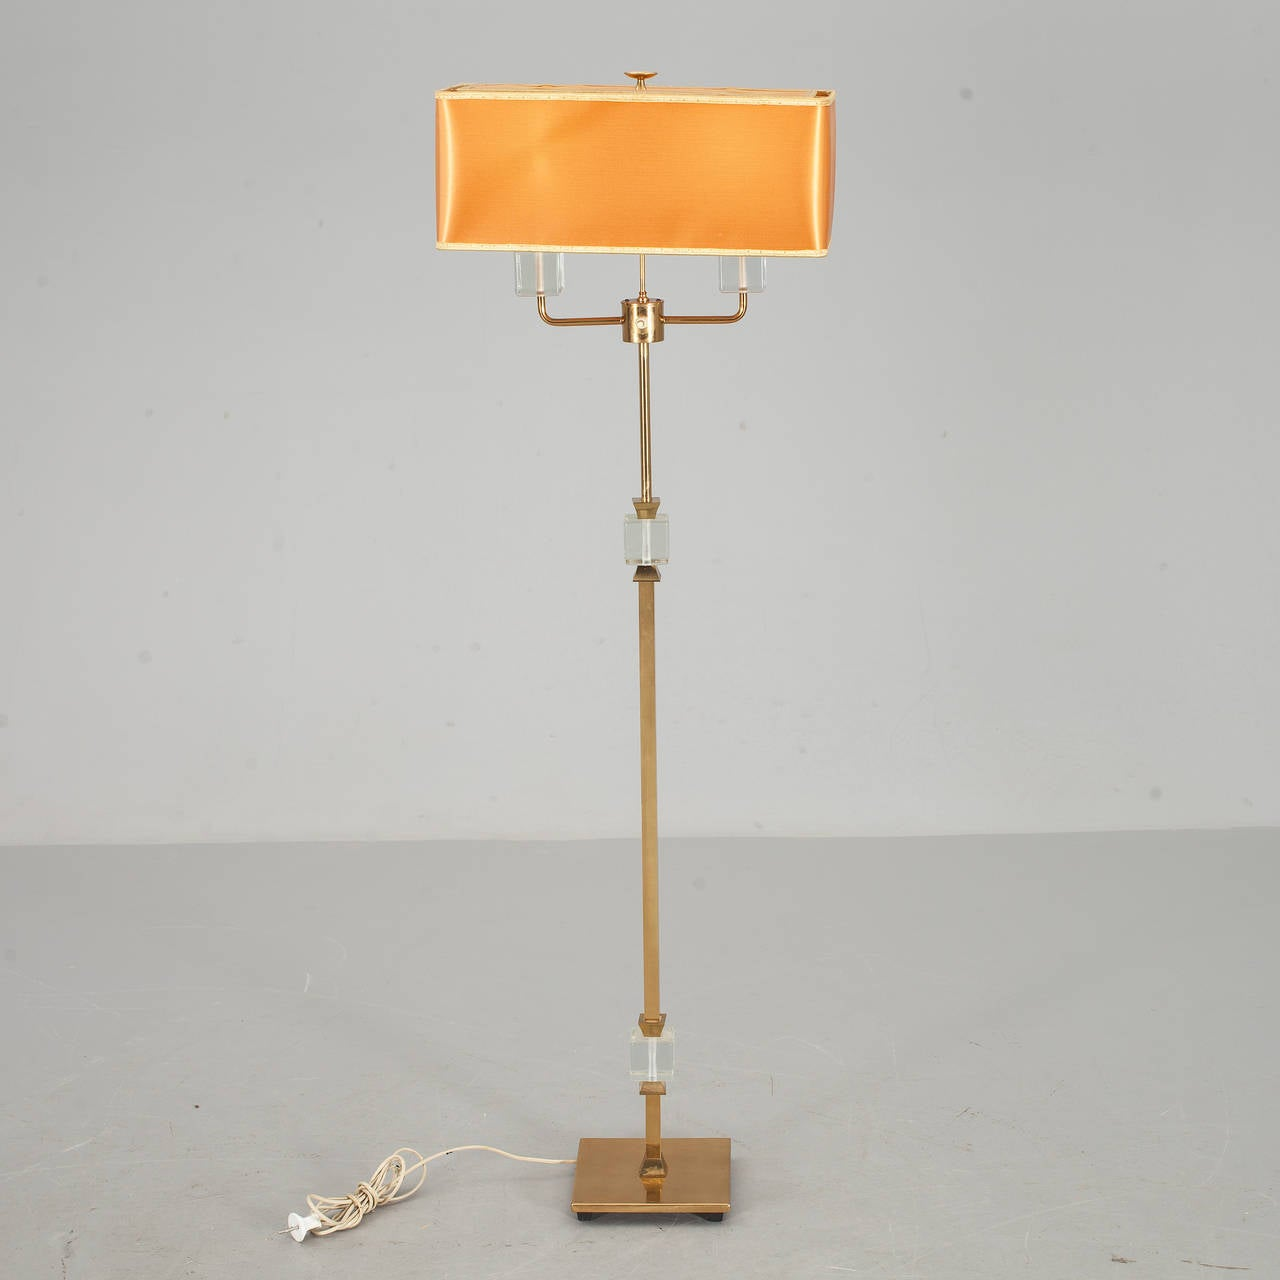 A floor lamp by Malmo metal product company, Sweden, circa 1950.